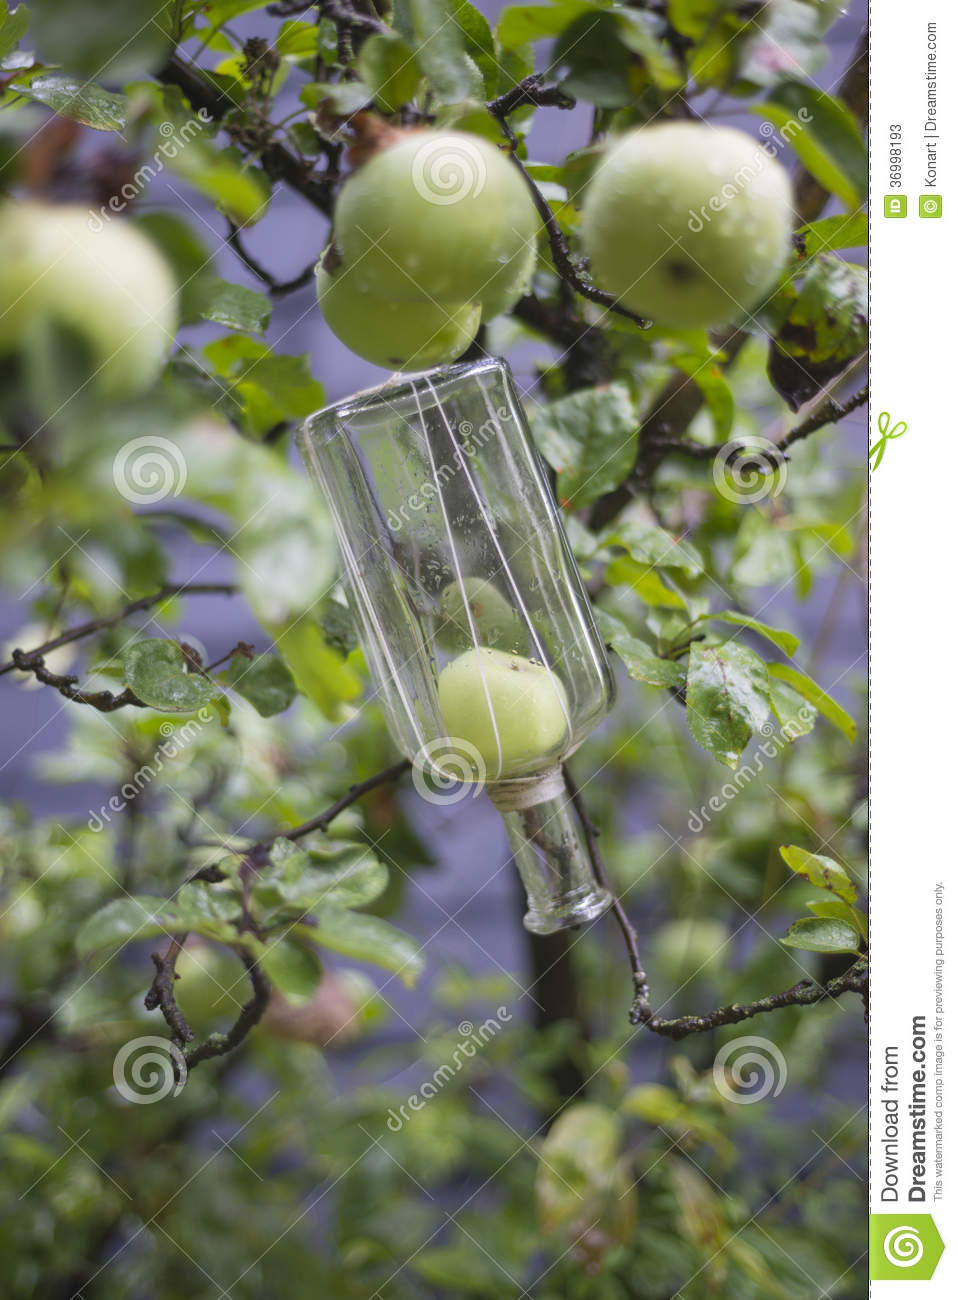 growing fruit into bottle stock photos image 36998193 free apple clip art download free apple clip art download